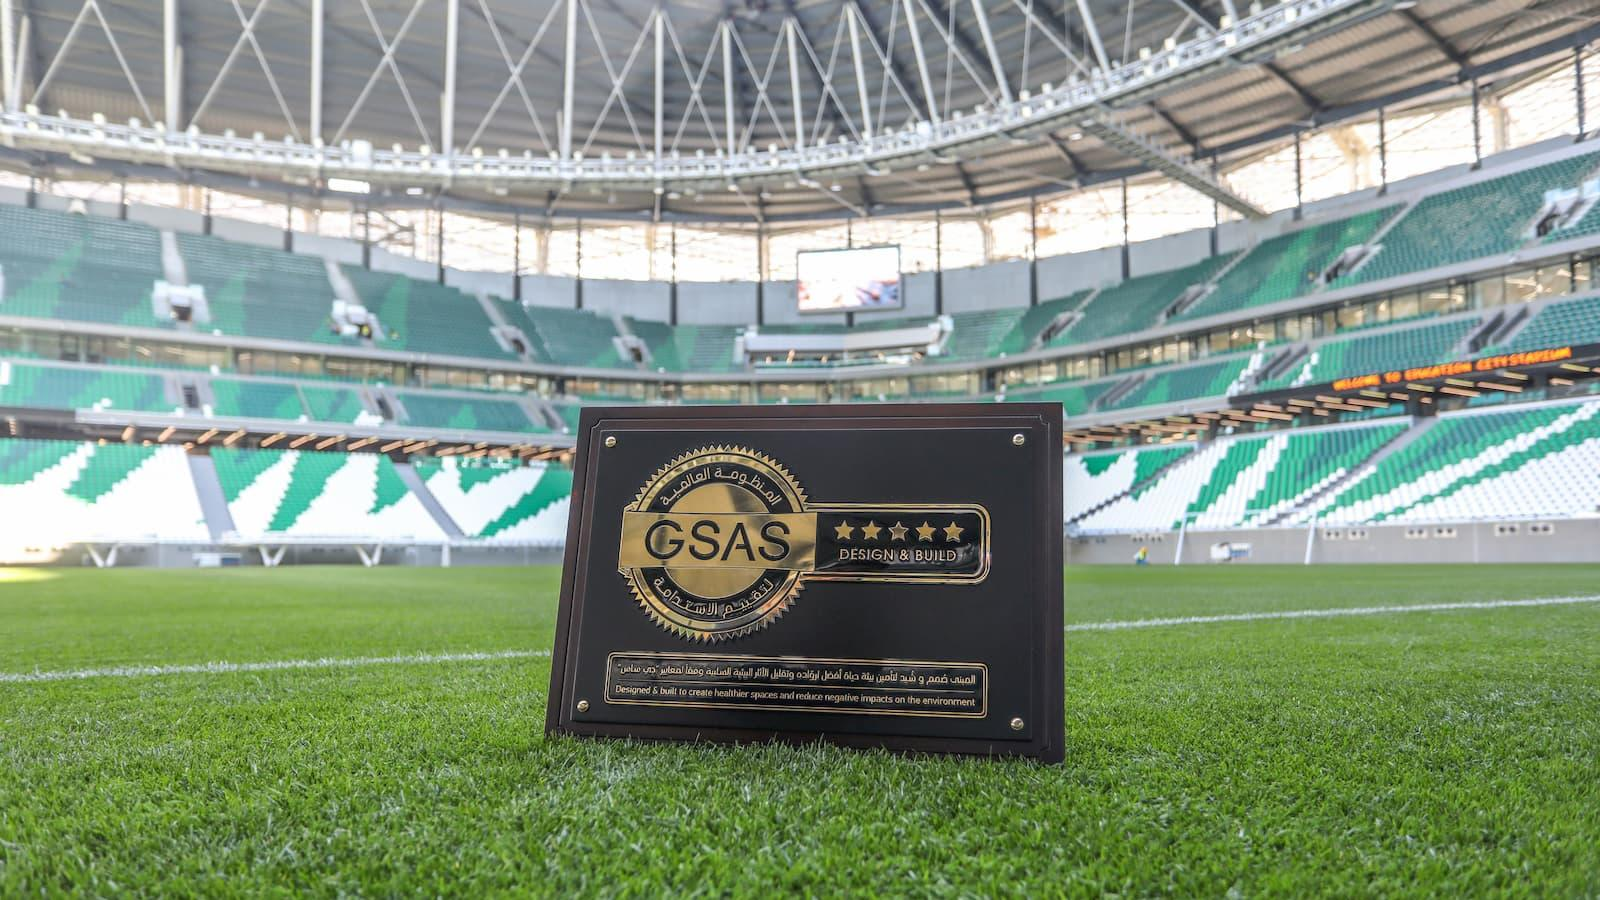 Education City stadium gets 5-star rating for sustainability